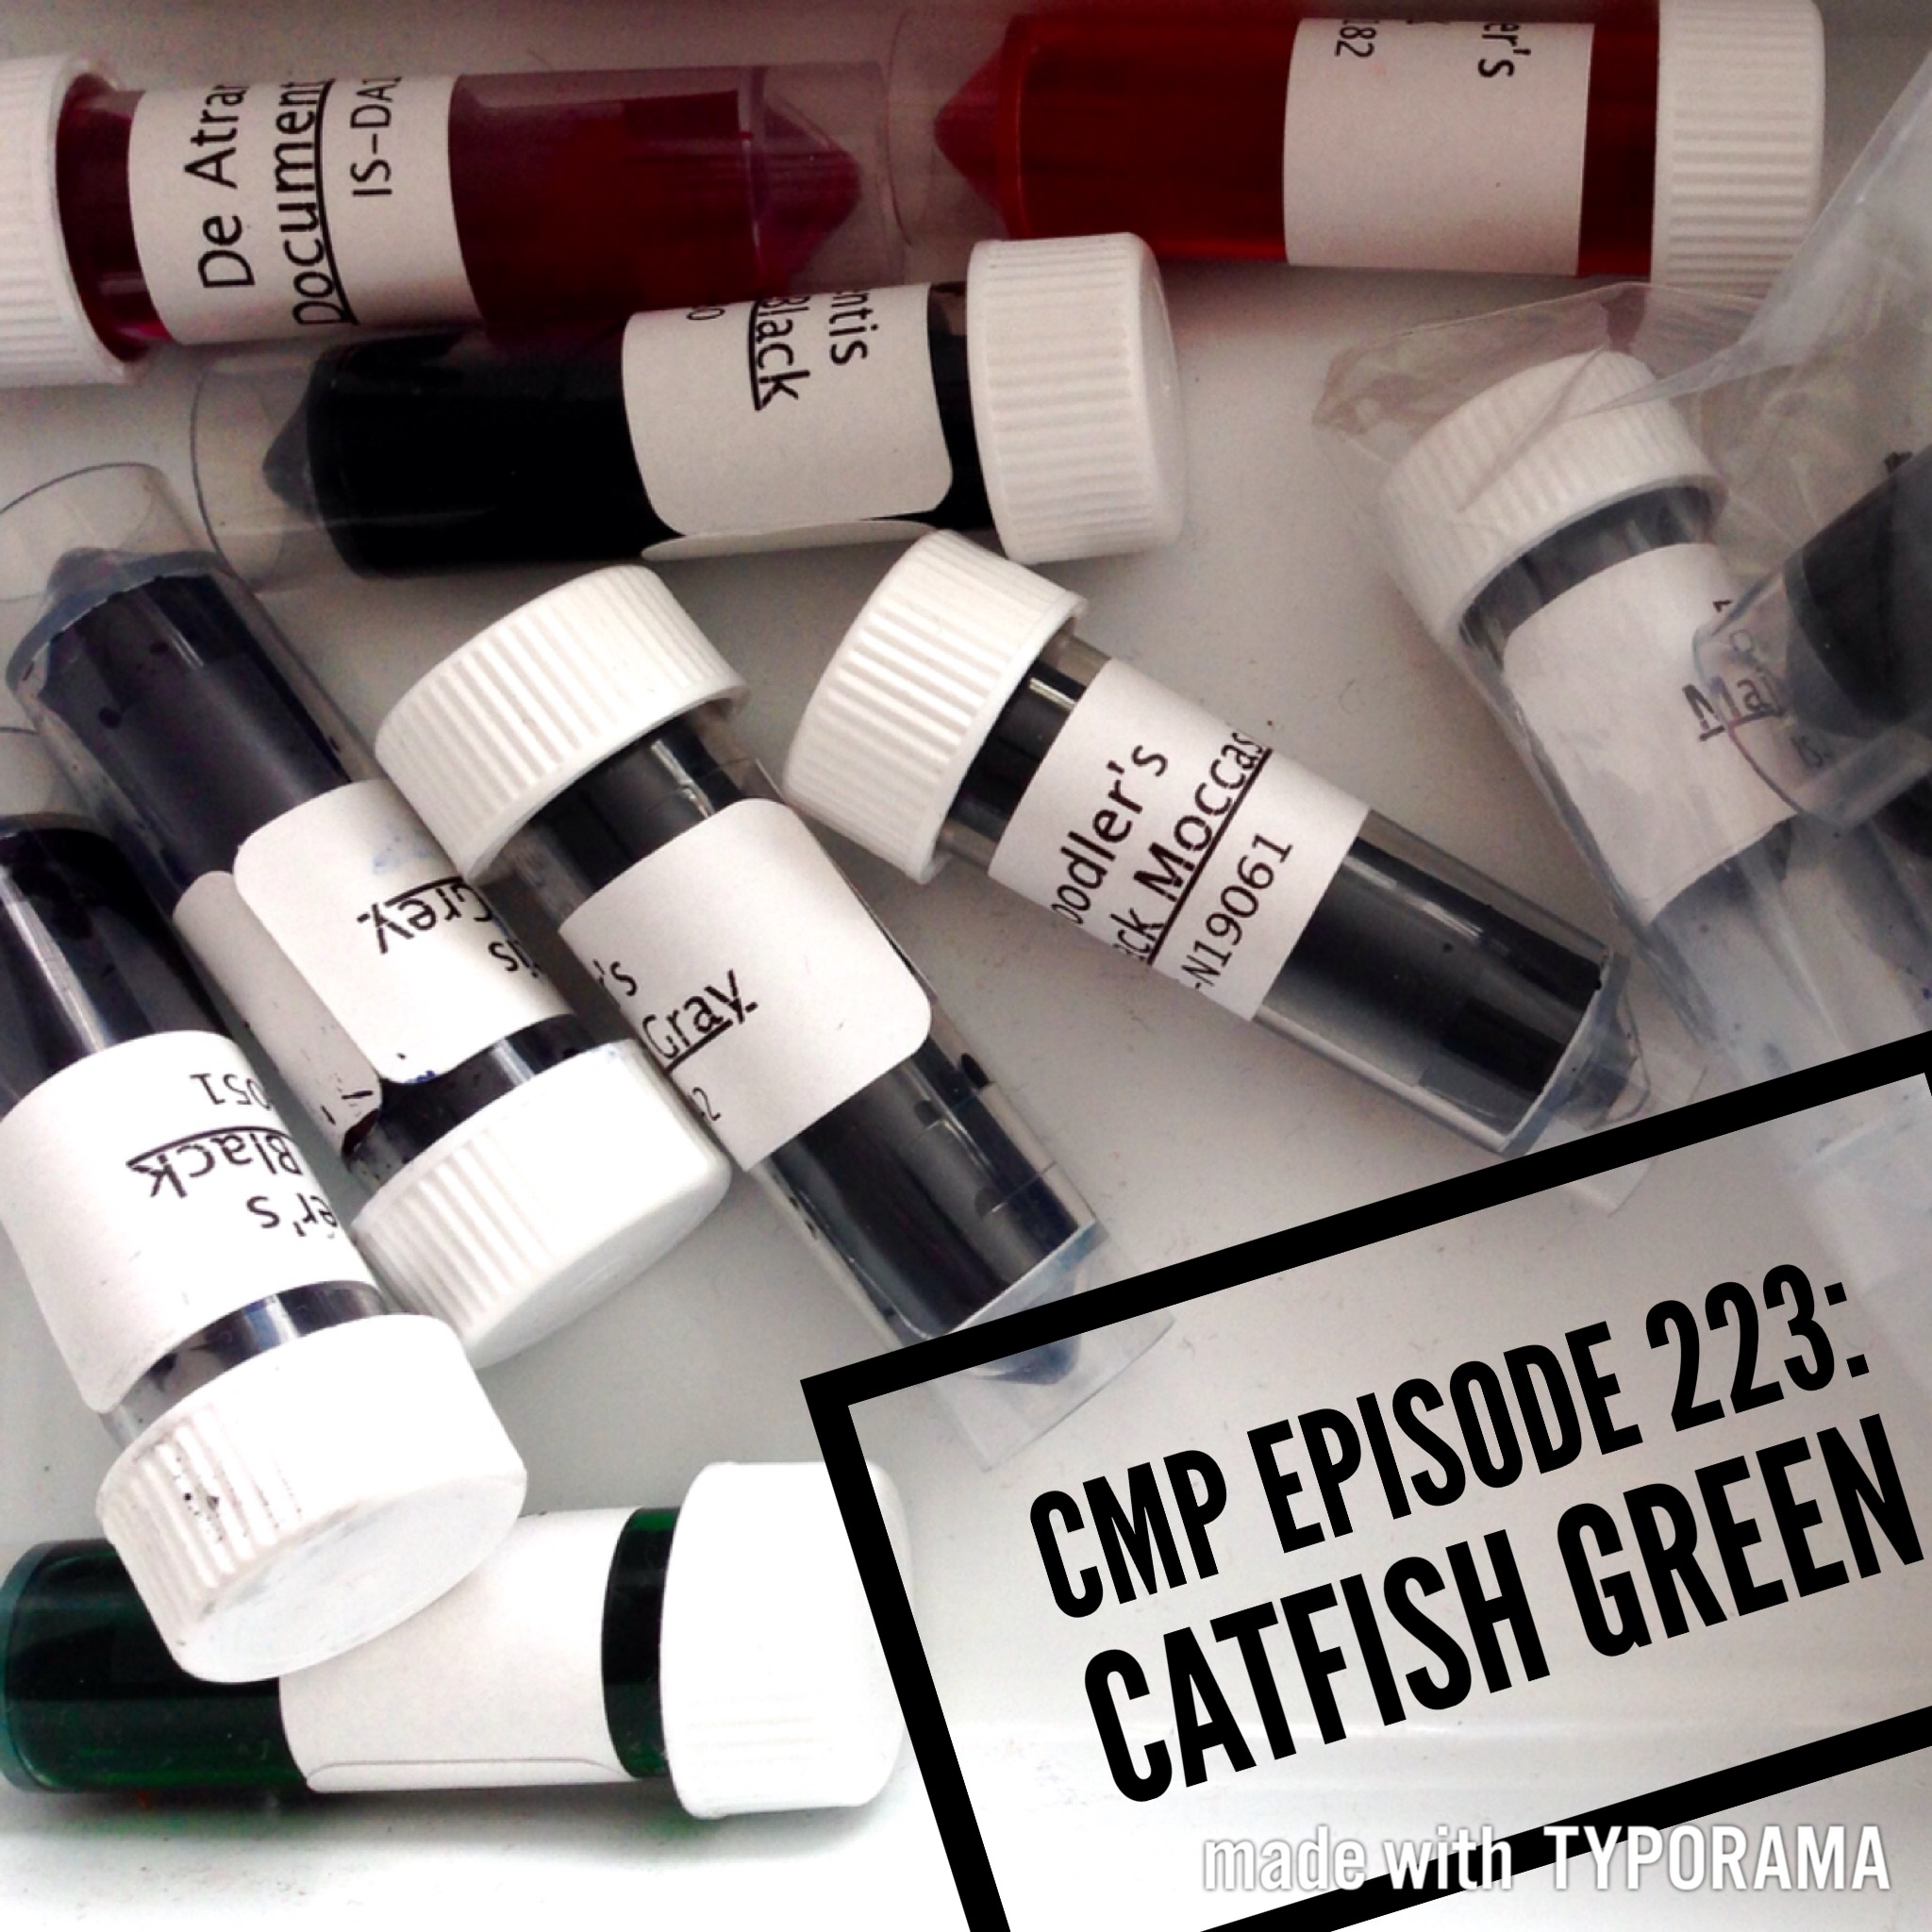 Episode 223: Catfish Green